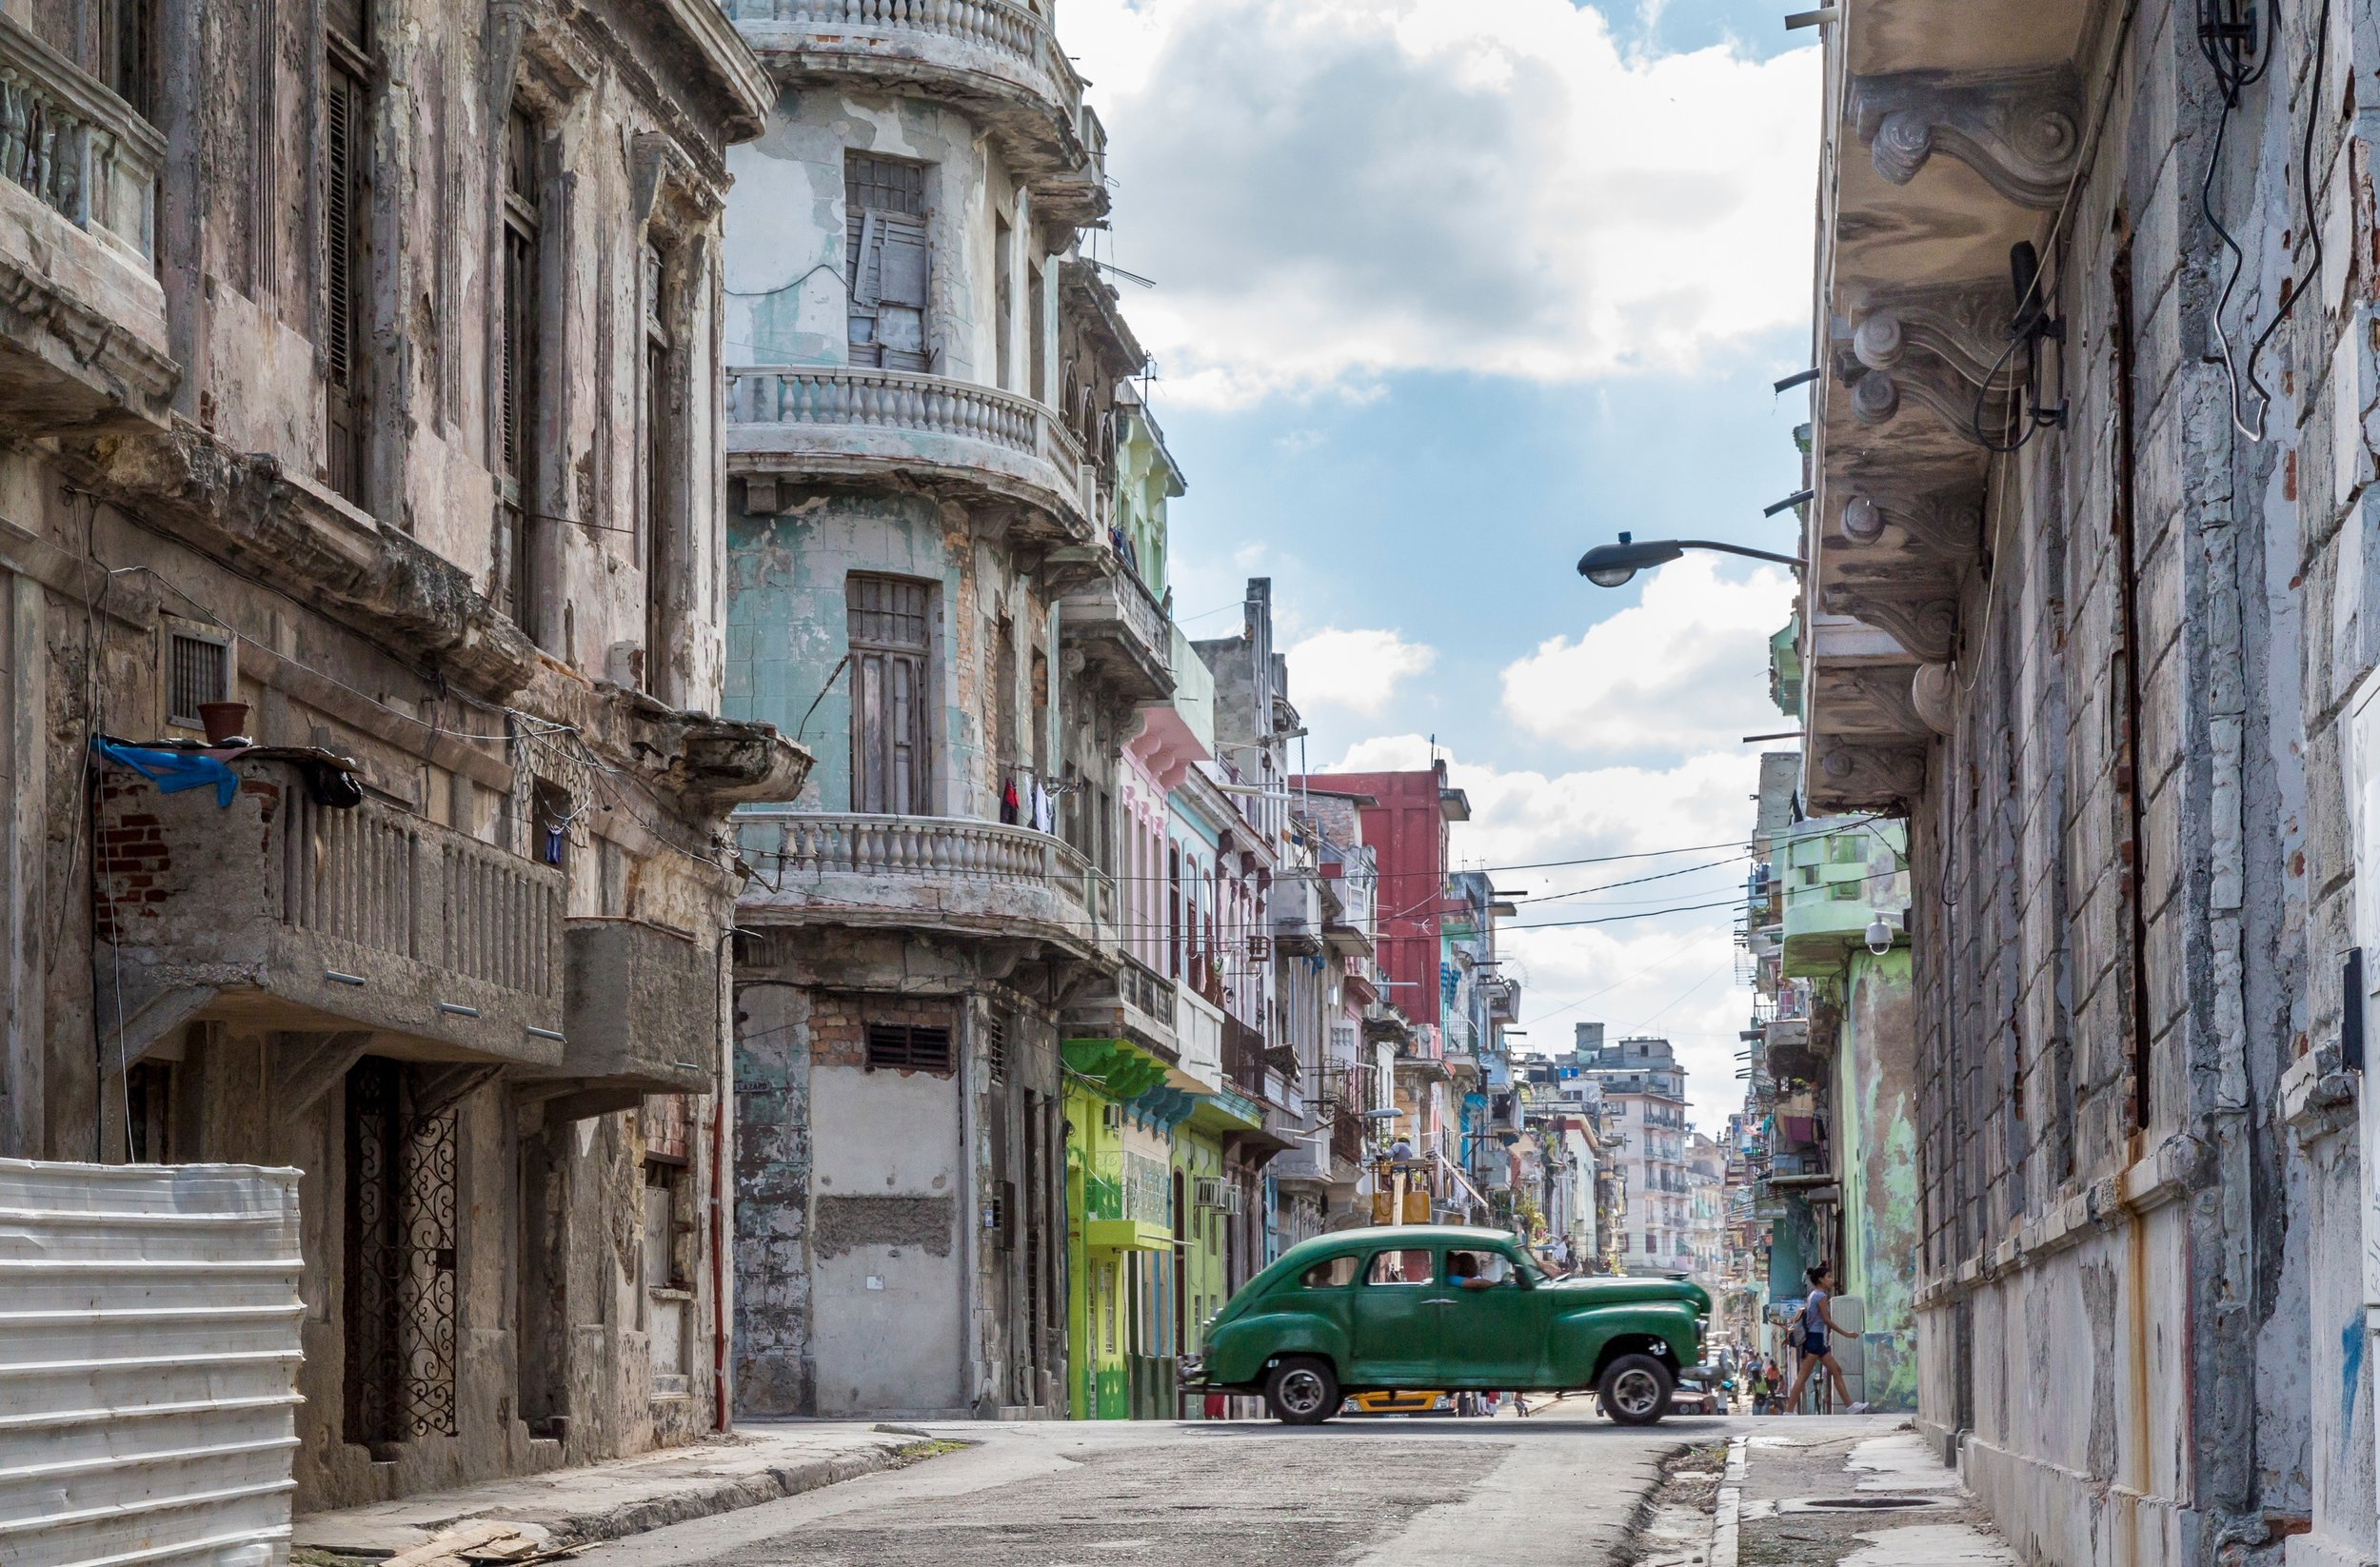 A Return to Cuba - Raul Ramos Y Sanchez returns to his native Cuba after 52 years away with hope and apprehension.